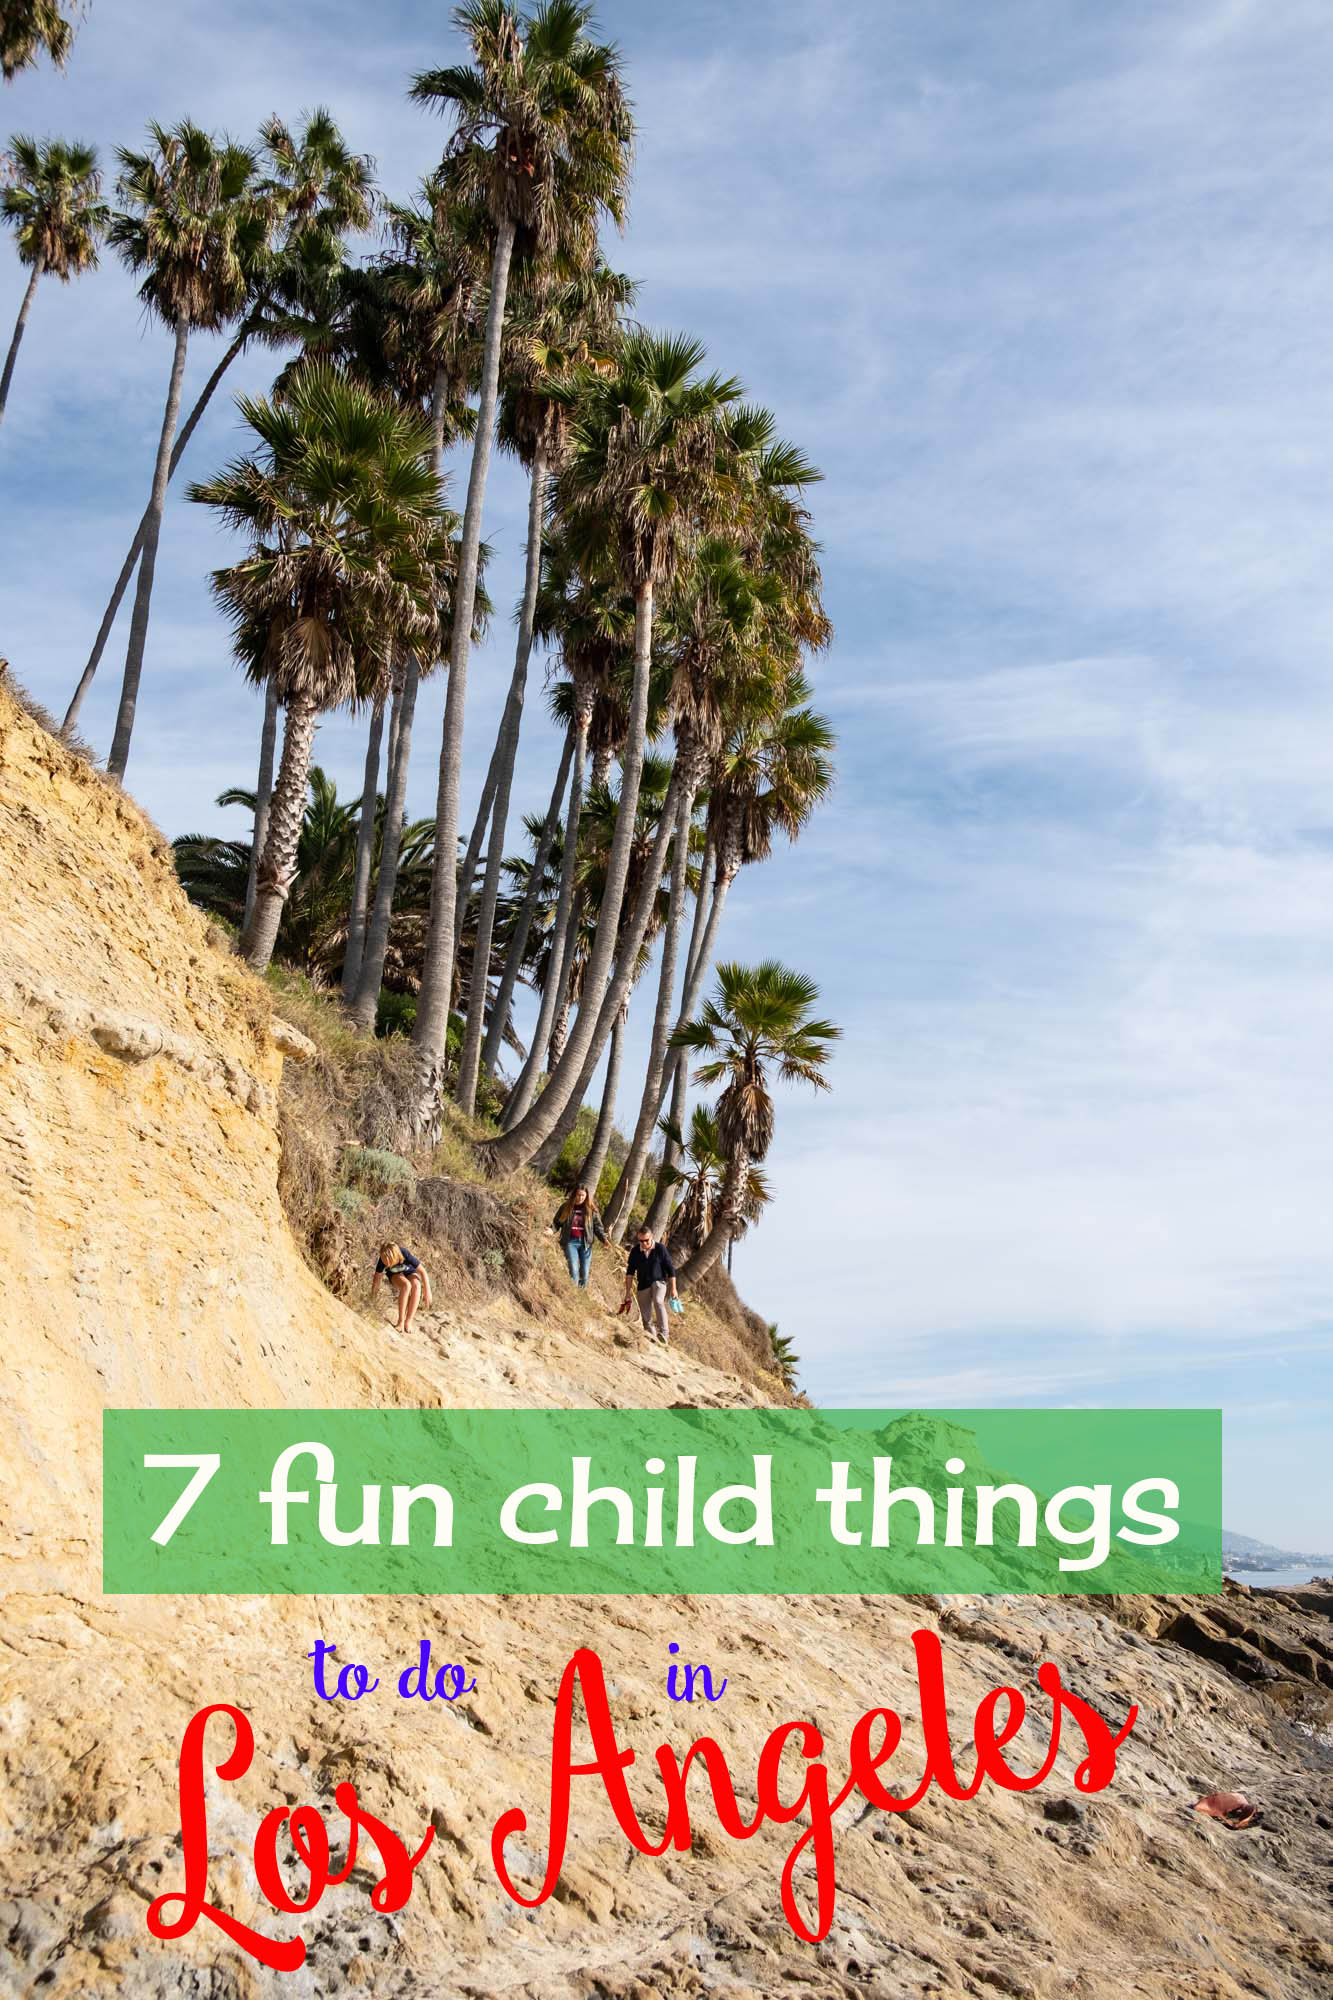 7 fun, kid friendly activities to do in Los Angeles.